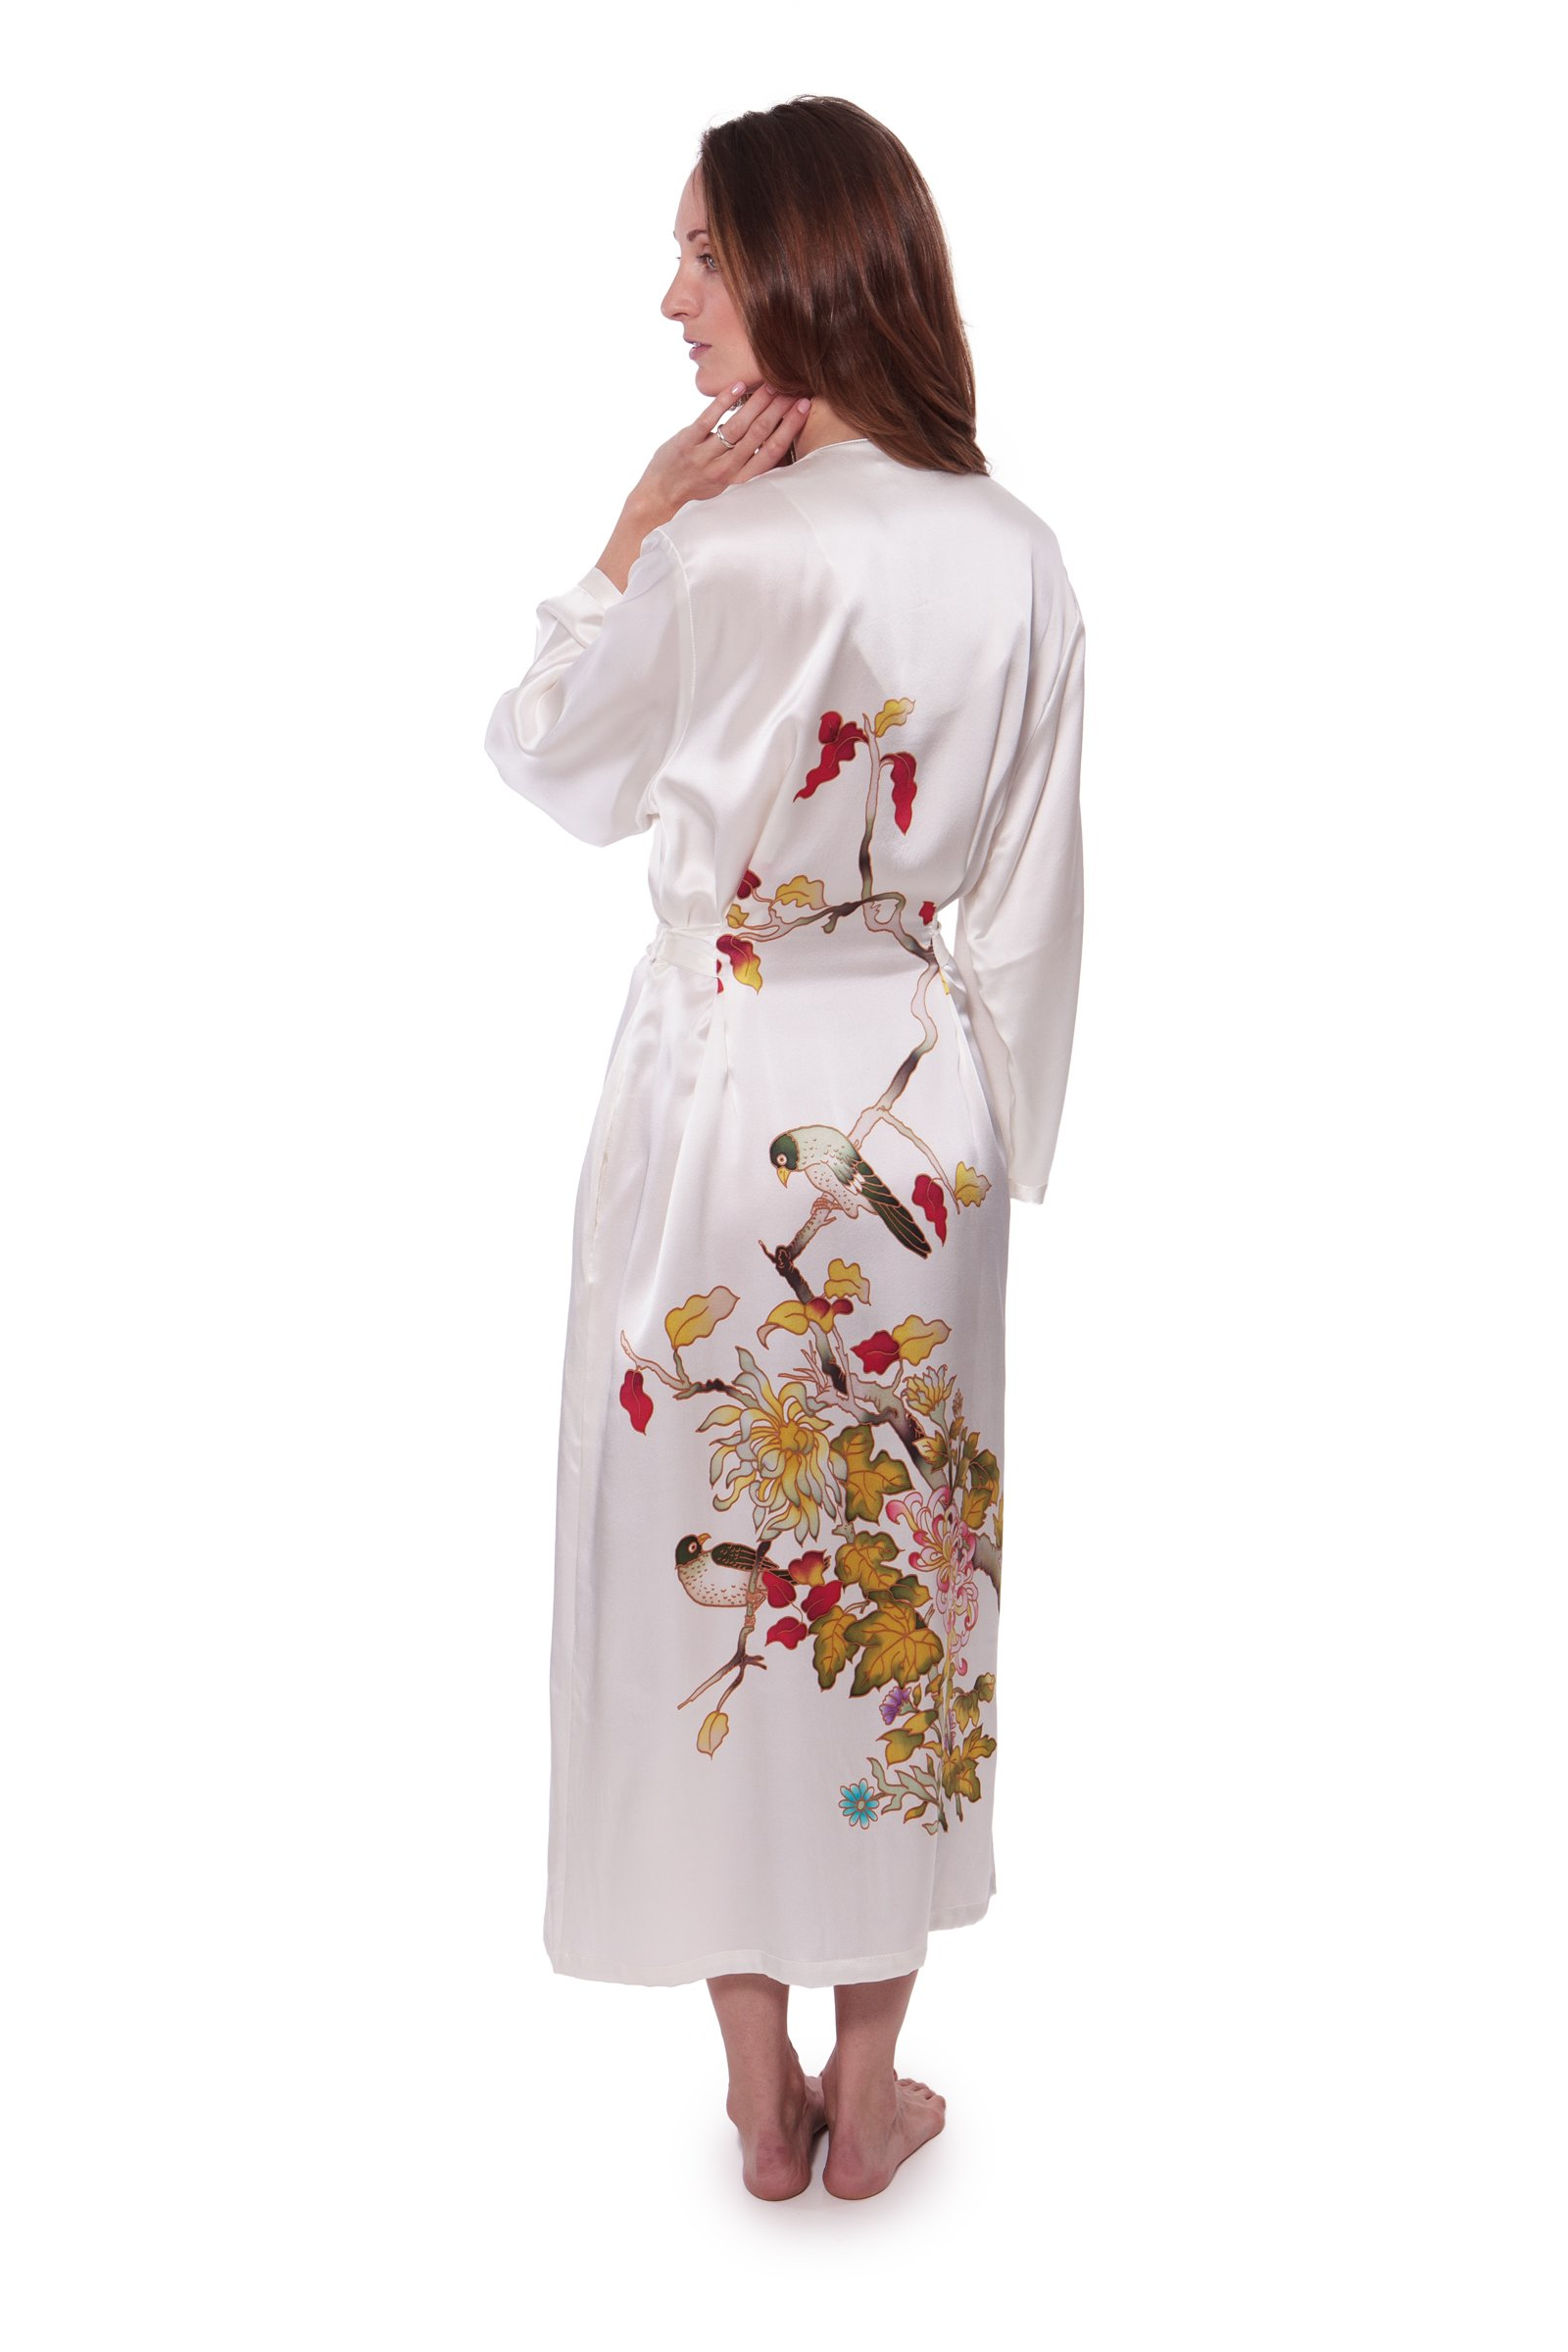 TexereSilk Women's Hand Painted Silk Robe (Natural White, Large/X-Large) Luxury Gifts for Women WS0103-NWH-LXL